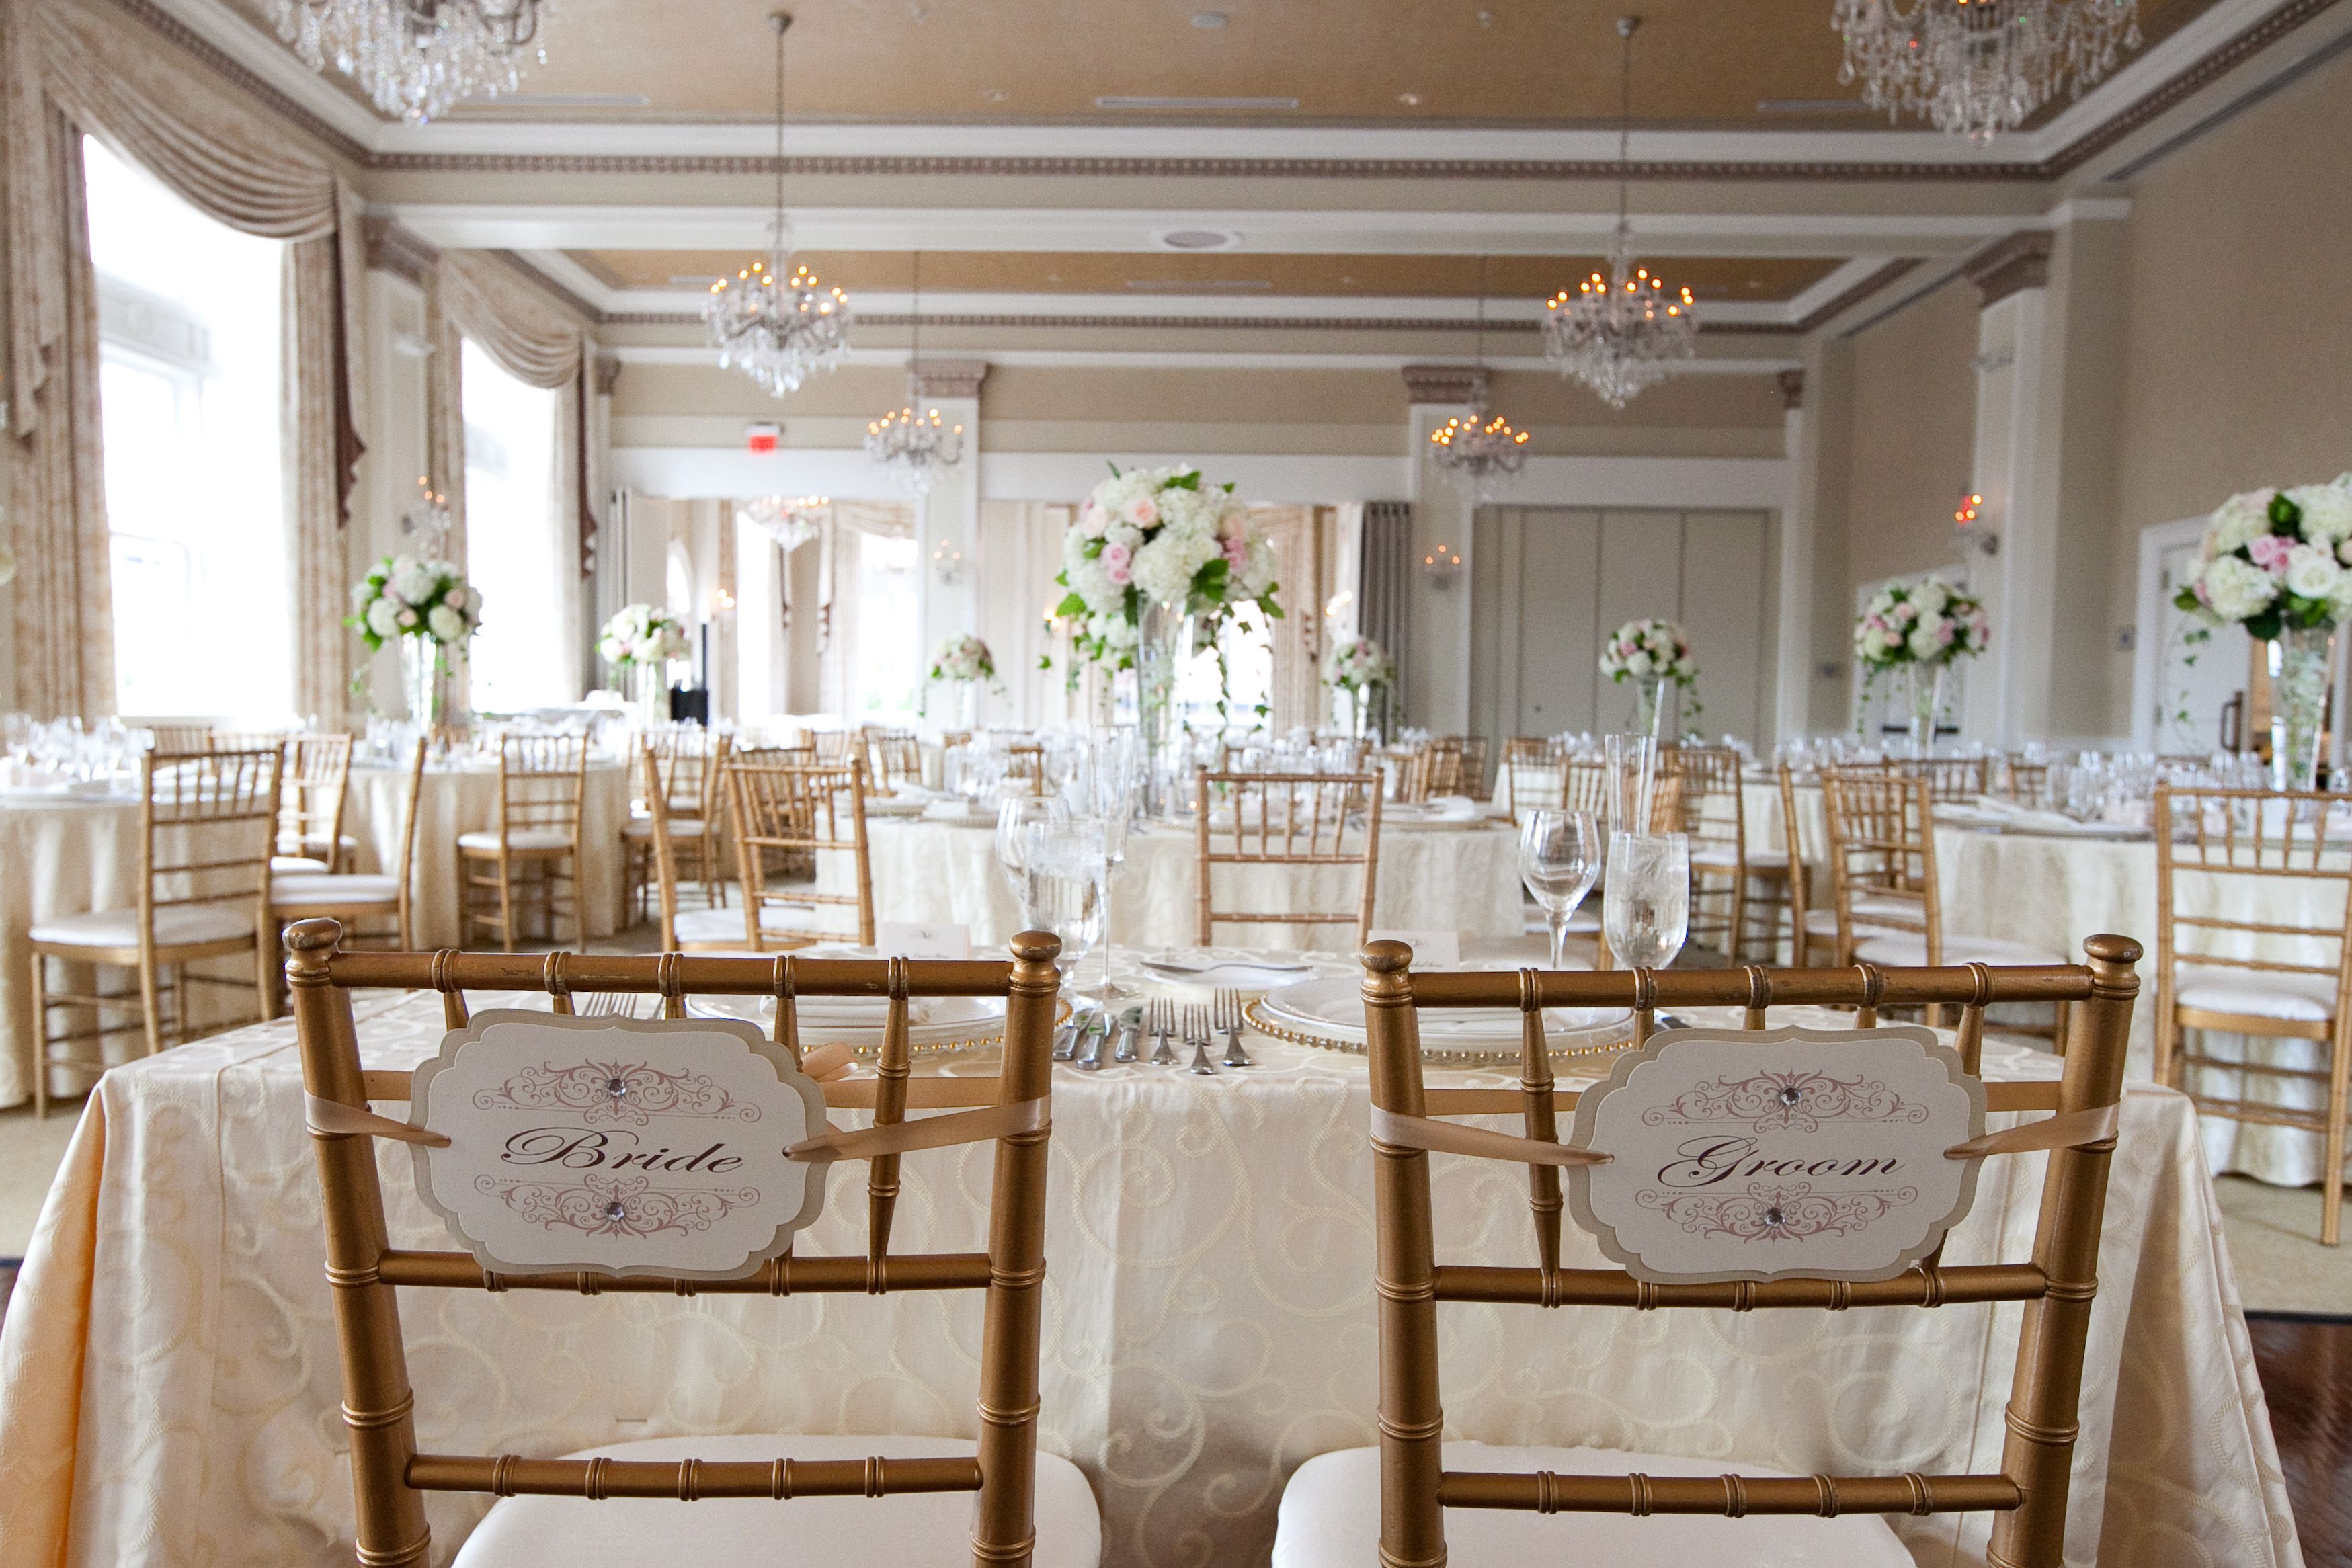 Bride & Groom Chair Covers by Julie Napear graphy